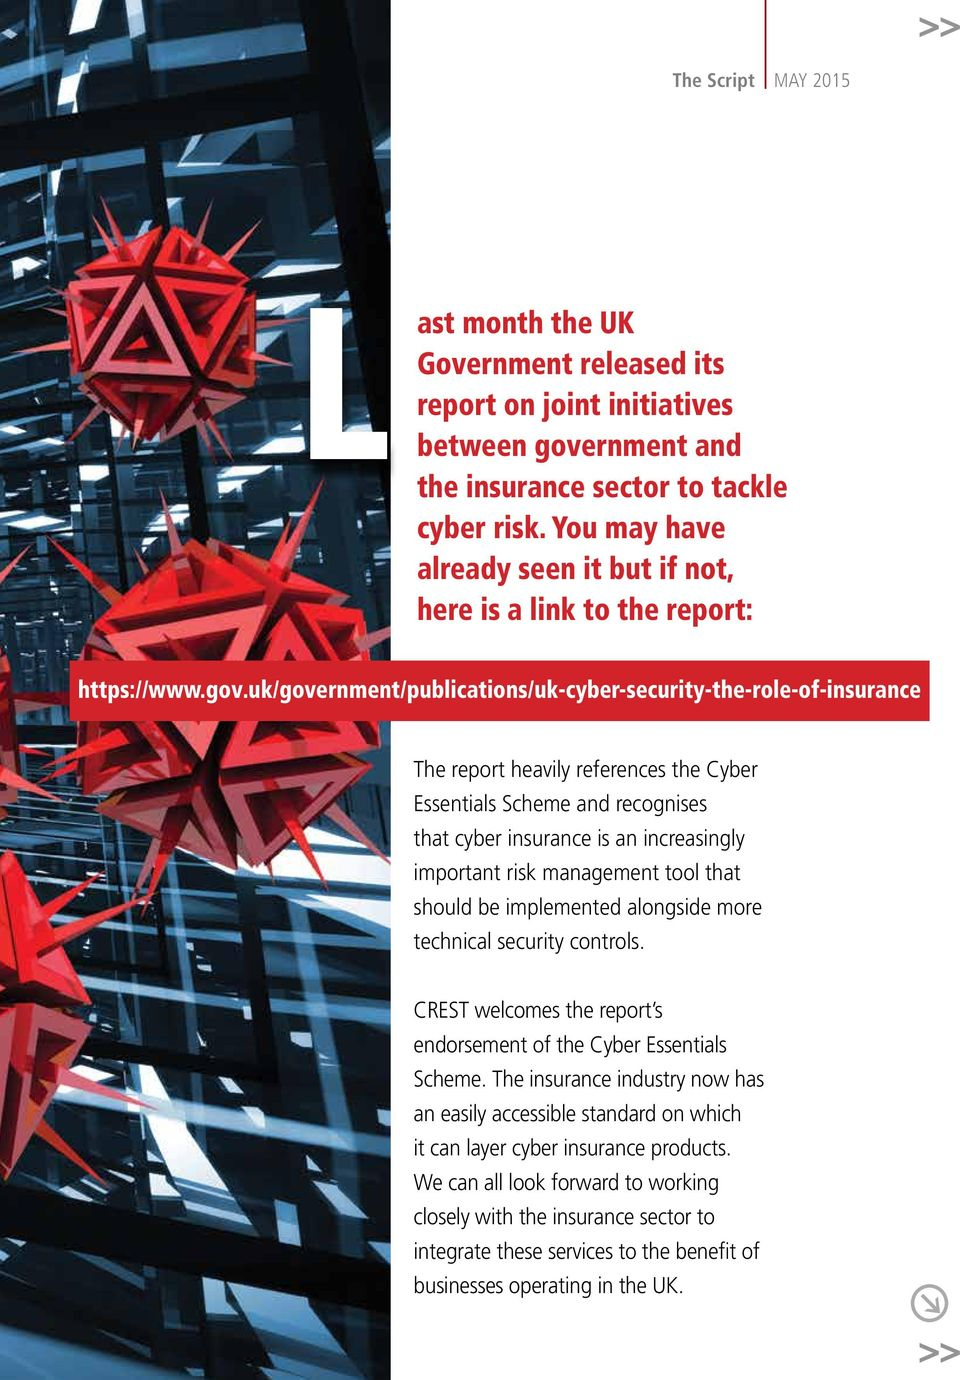 uk/government/publications/uk-cyber-security-the-role-of-insurance The report heavily references the Cyber Essentials Scheme and recognises that cyber insurance is an increasingly important risk